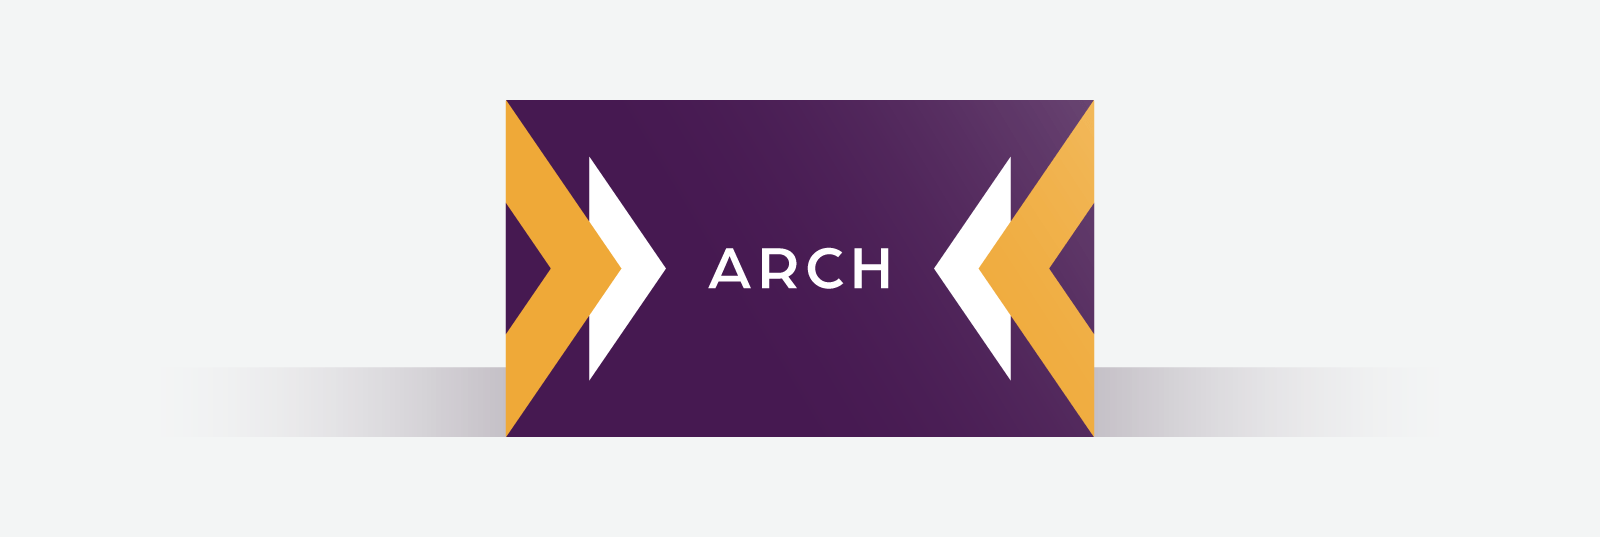 Dark purple business card with orange and white geometric shapes